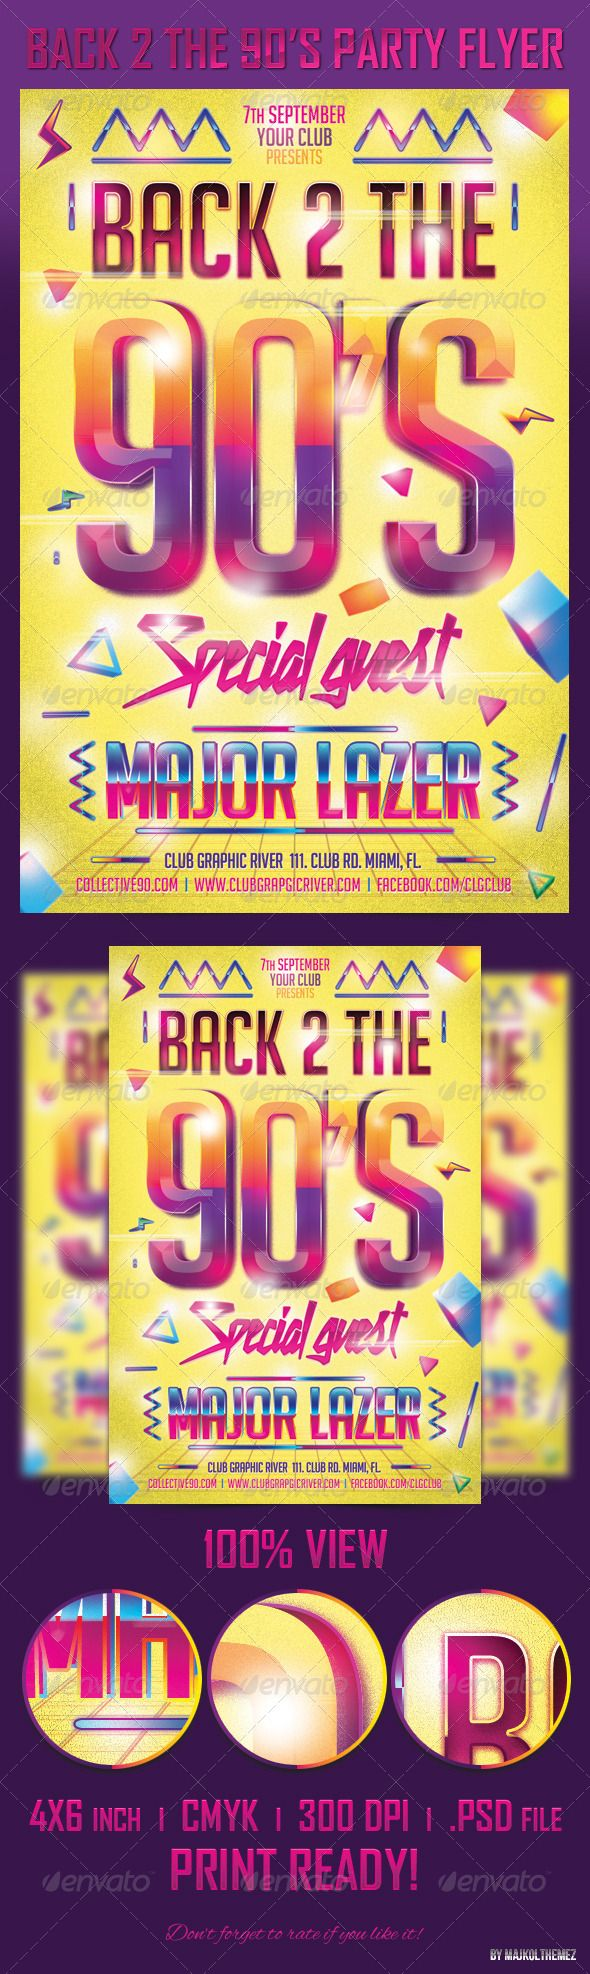 90's fashion, 90's flashback, 90's music, 90's party, 90's style, blue, gradient, magenta, majkol, party flyer, yellow